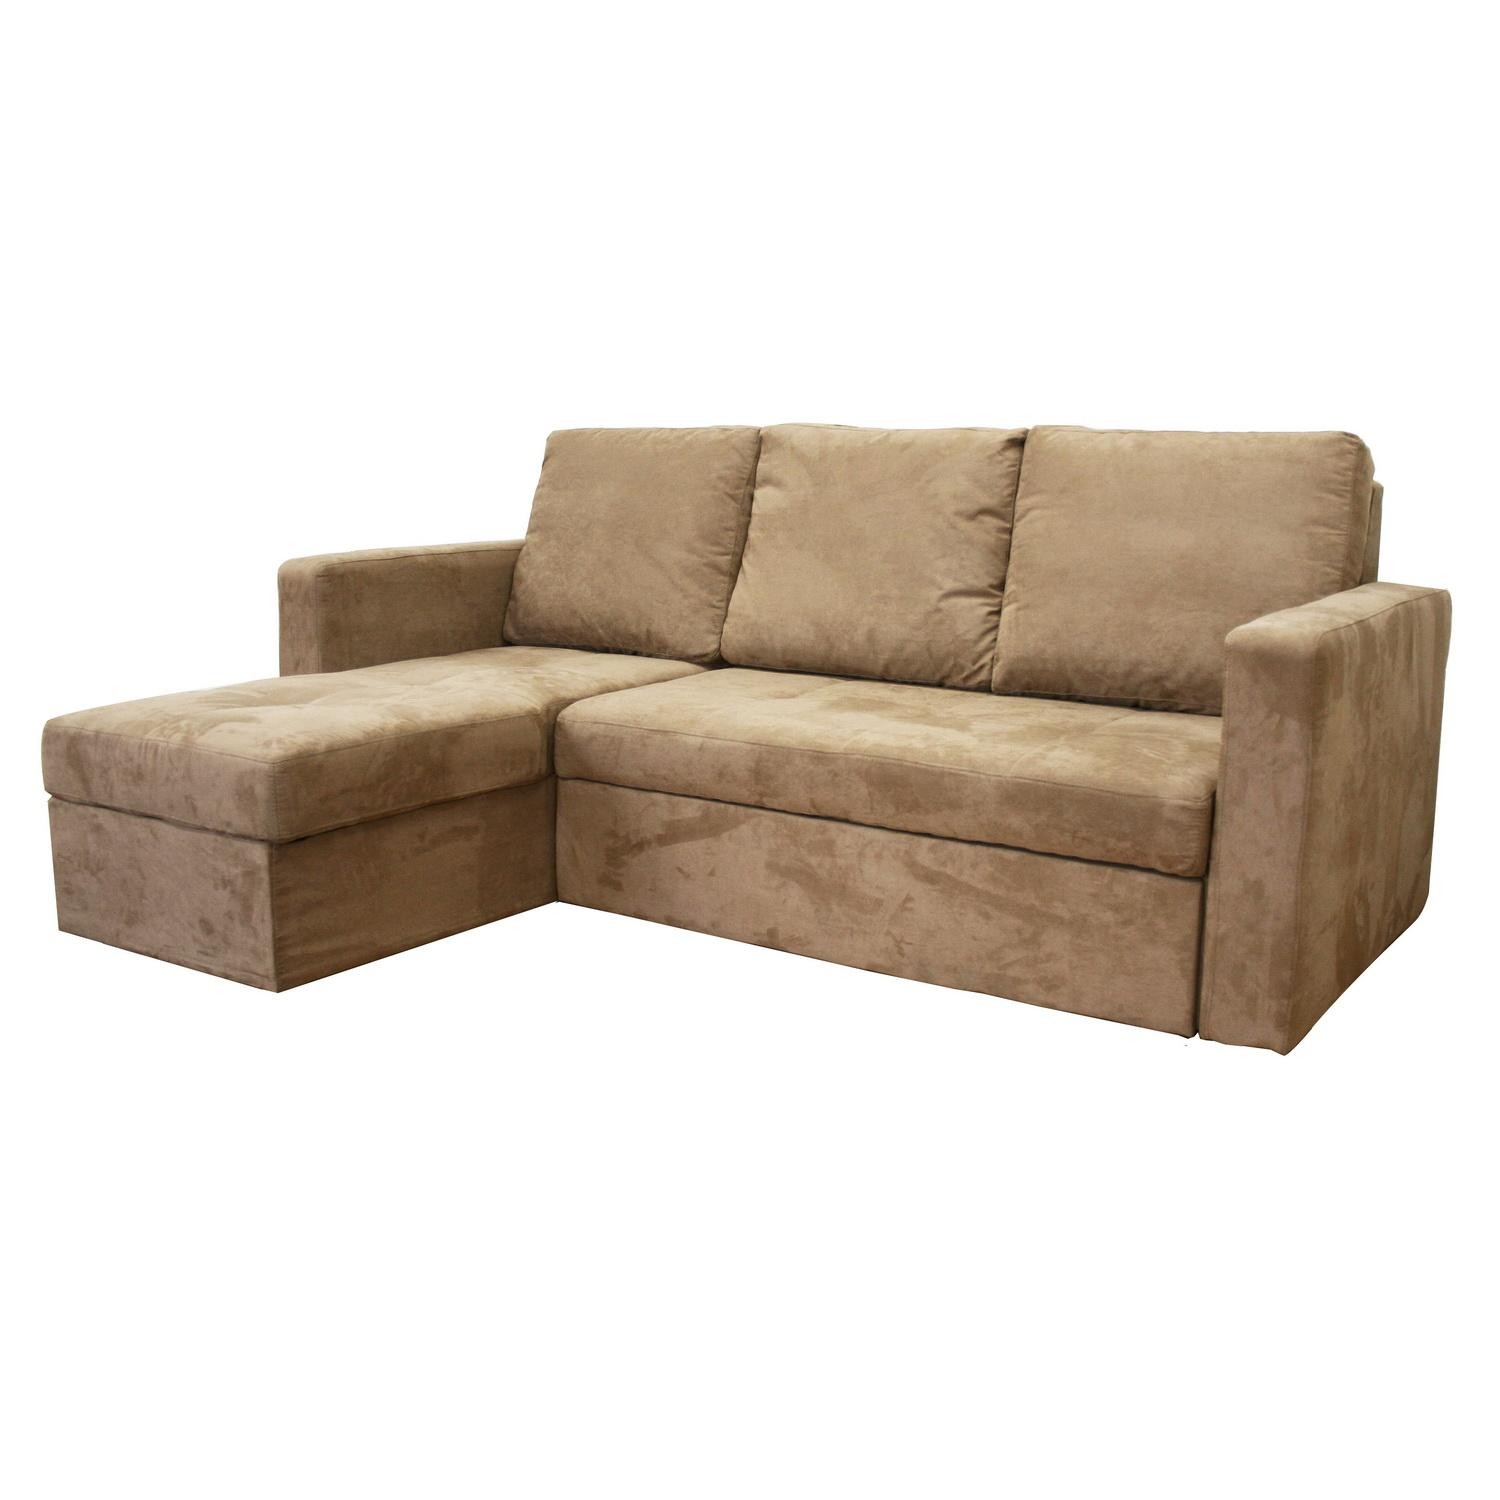 Image of: Twin Sleeper Chair IKEA Sectional